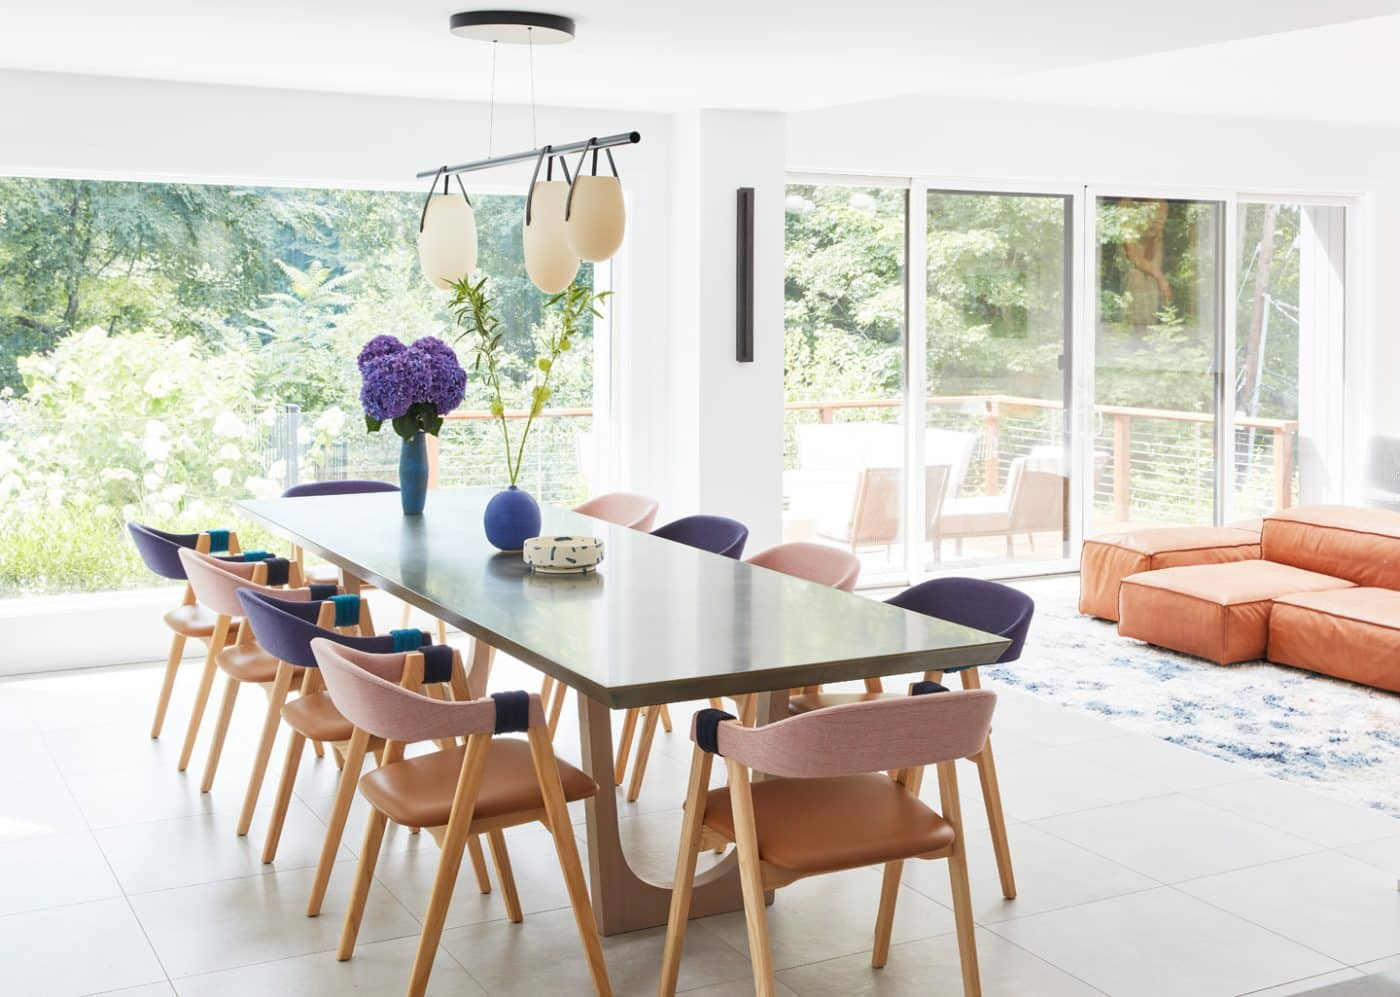 The dining room of an Oyster Bay house with interiors by Danielle Fennoy of Revamp Interior Design